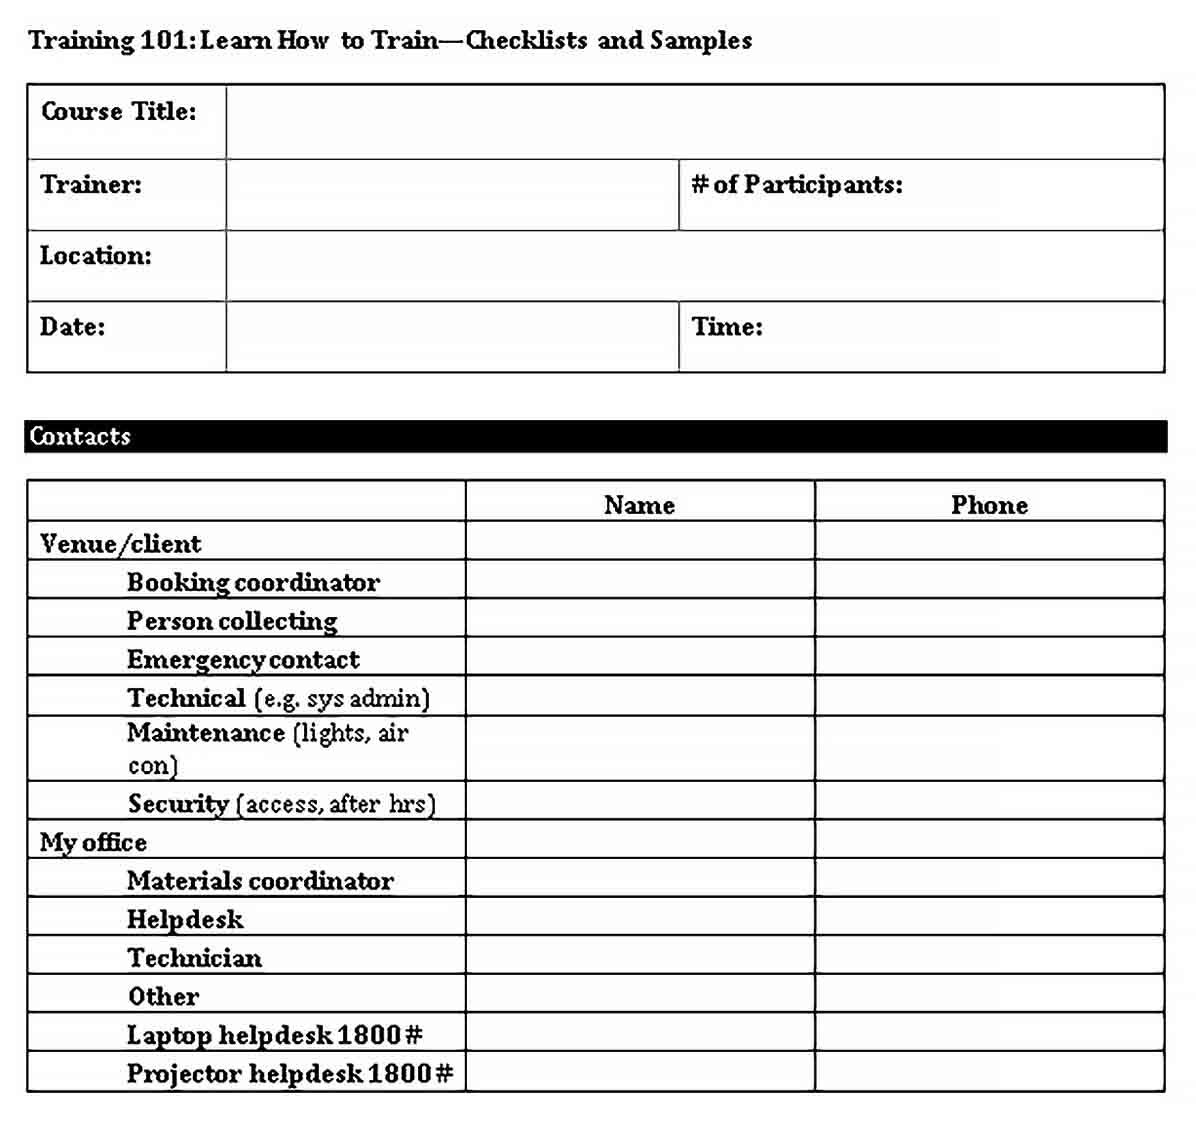 Template PDF Format of Training Checklists Template 1